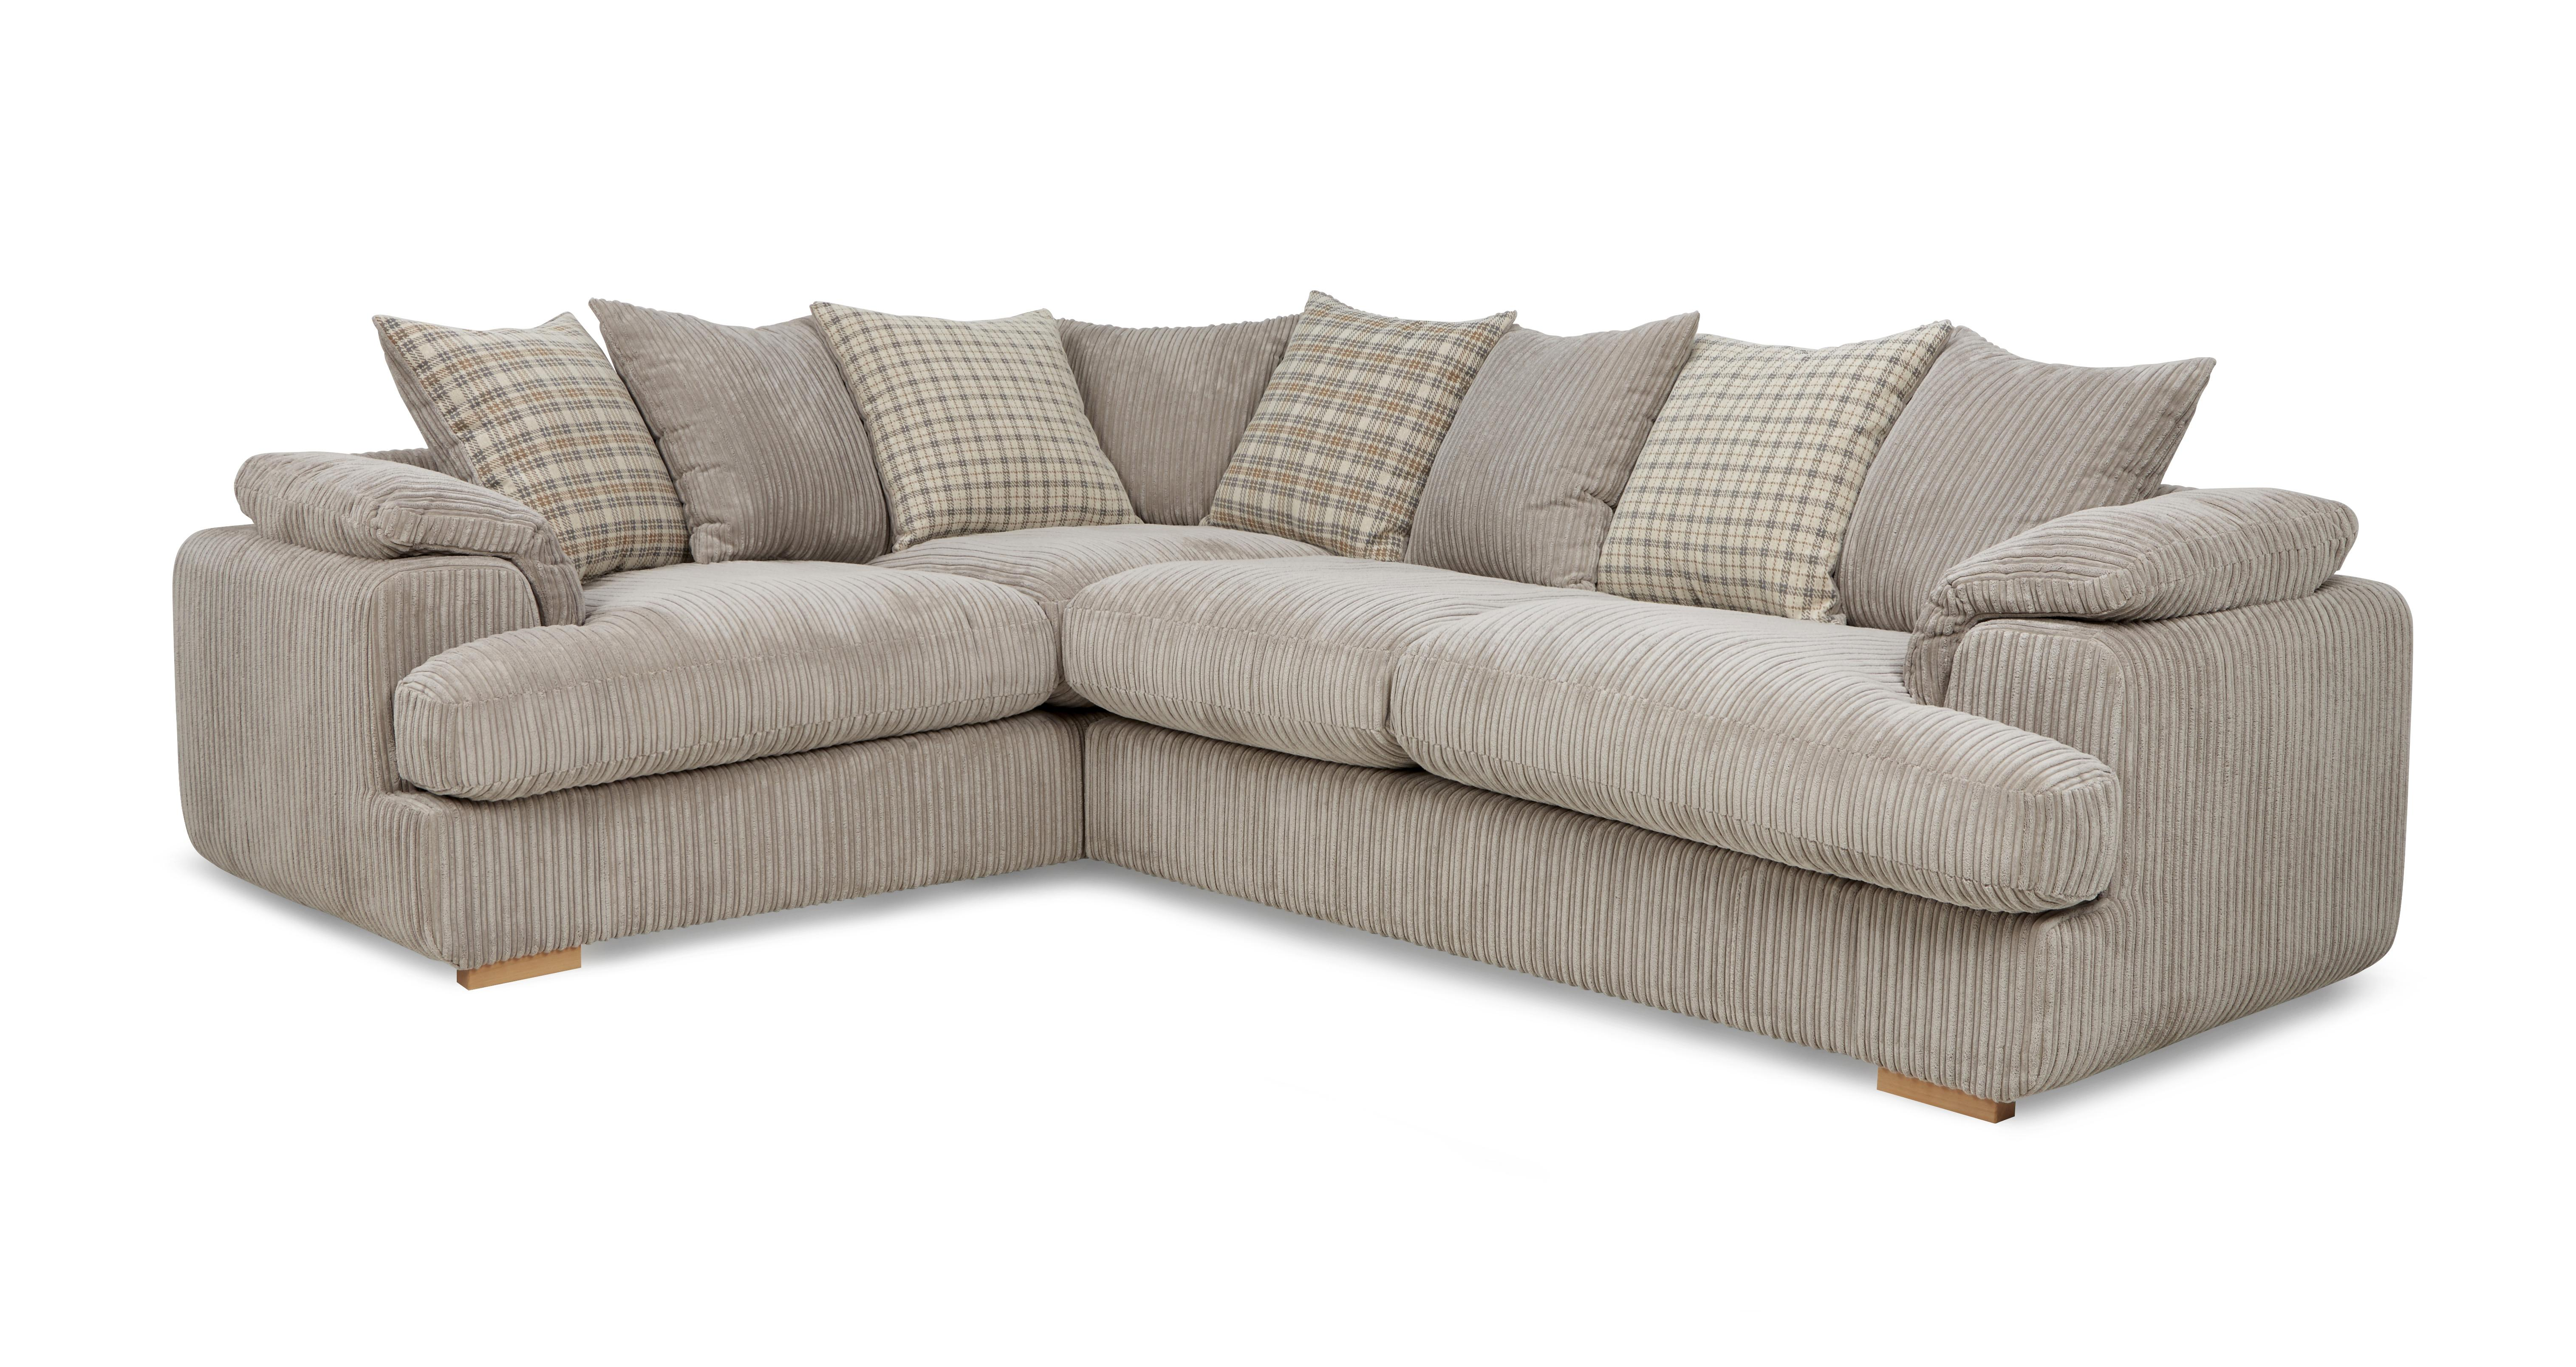 finest selection f7a6b c286b Celine: Right Arm Facing 2 Seater Pillow Back Corner Sofa